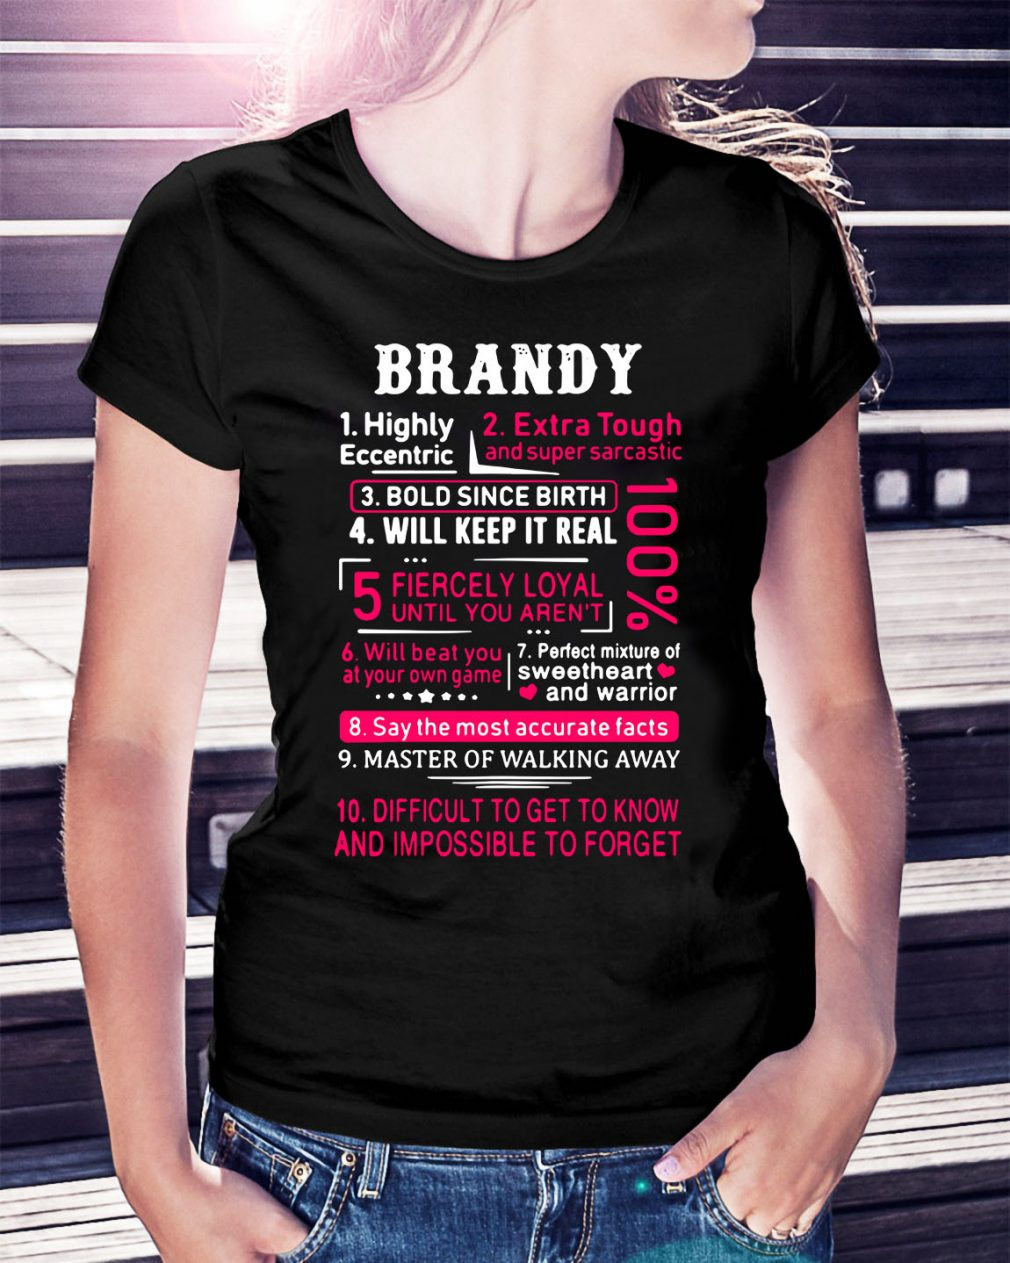 Brandy highly eccentric extra tough and super sarcastic Ladies Tee